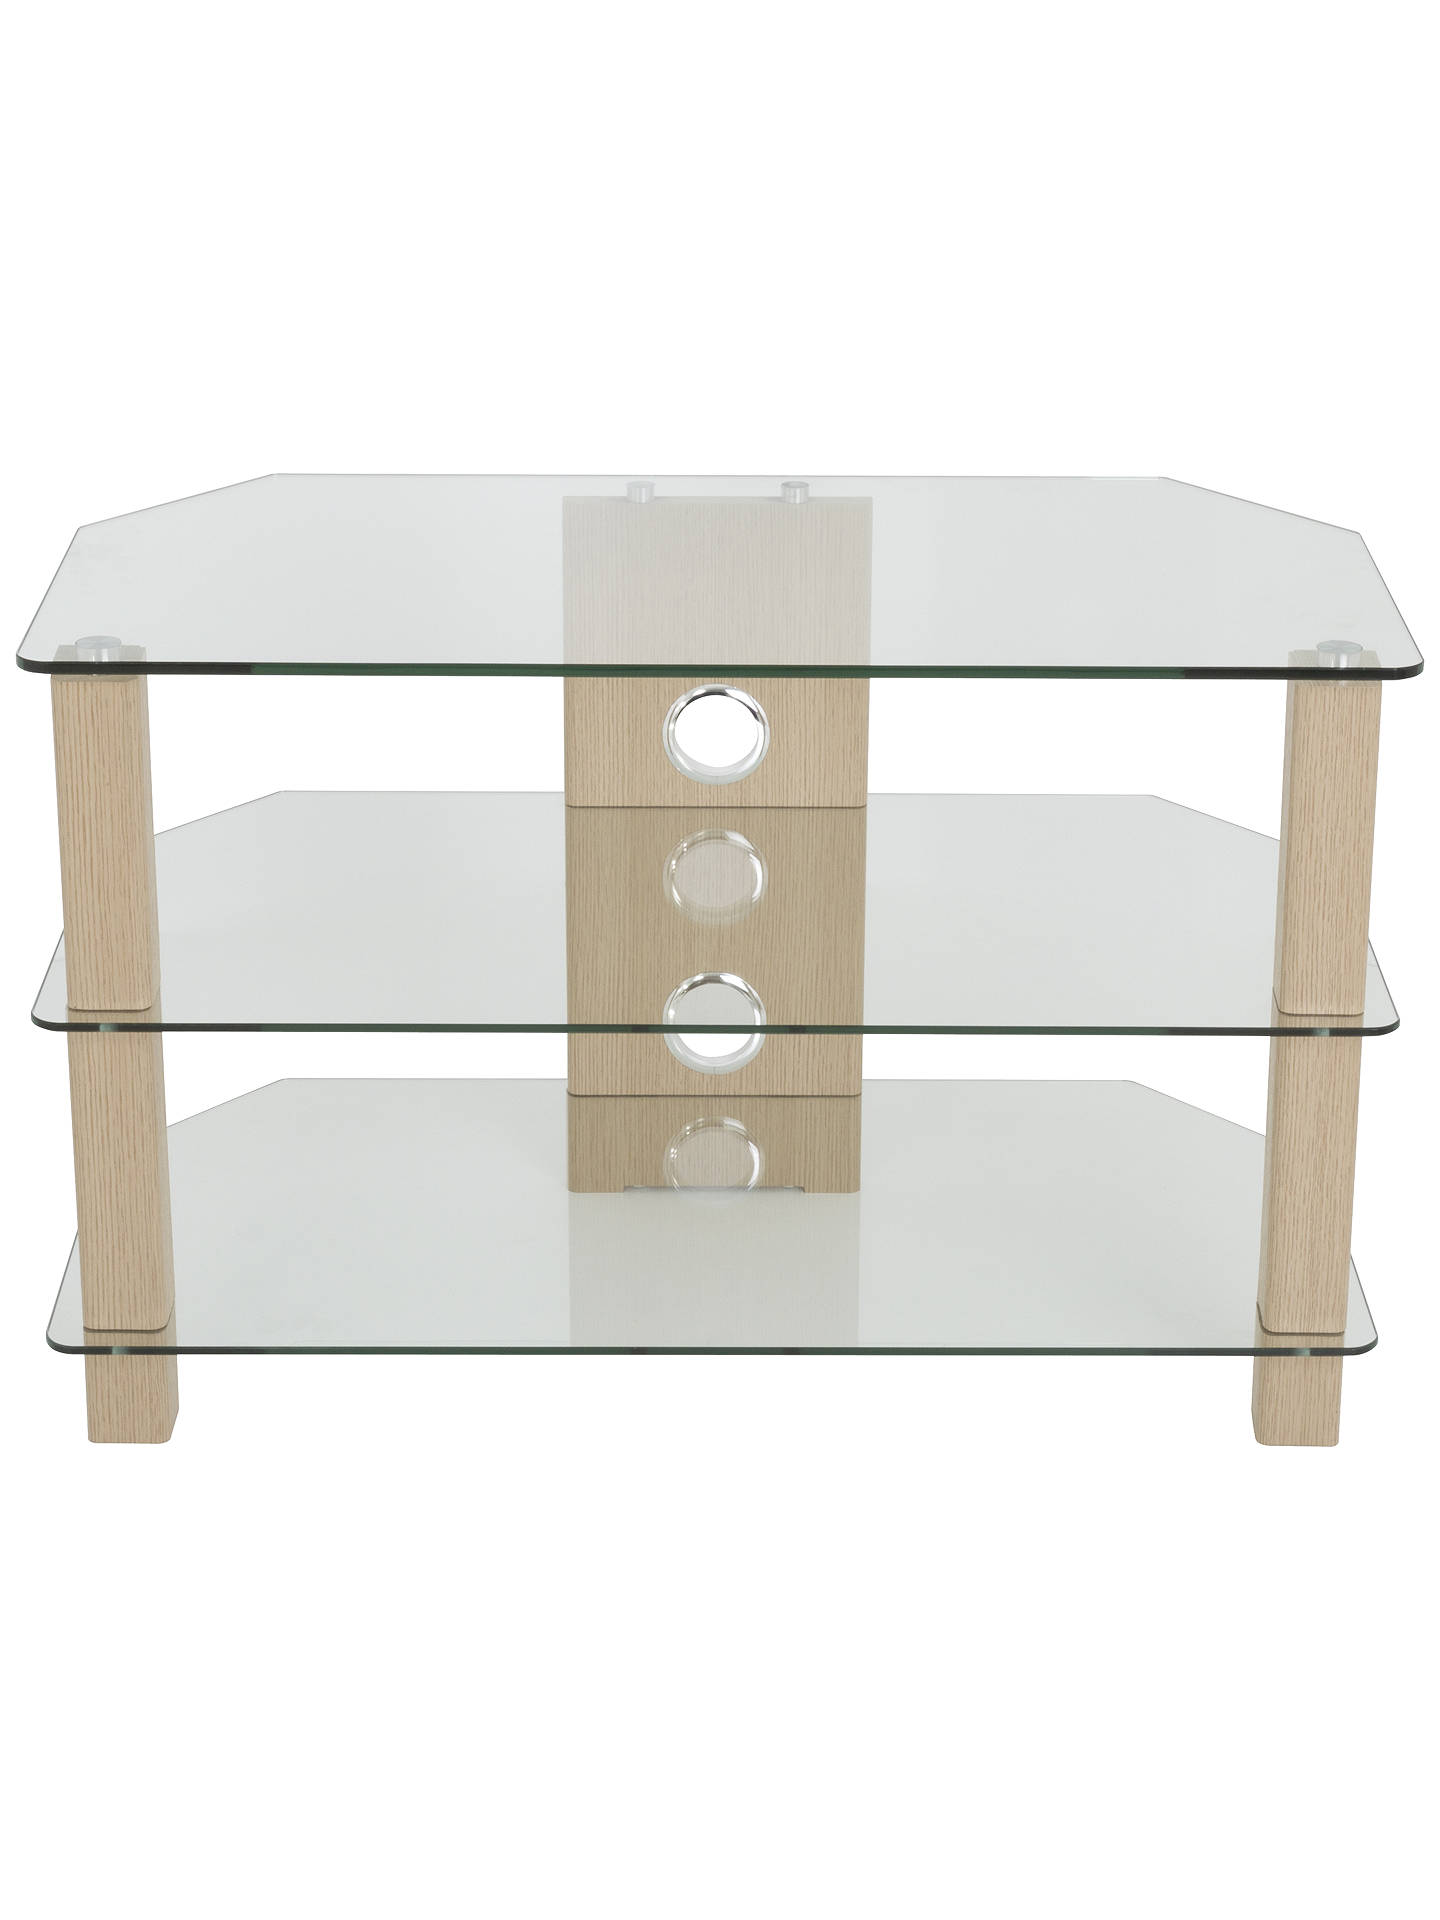 separation shoes 8215e c48a8 John Lewis & Partners WG800 TV Stand for TVs up to 40